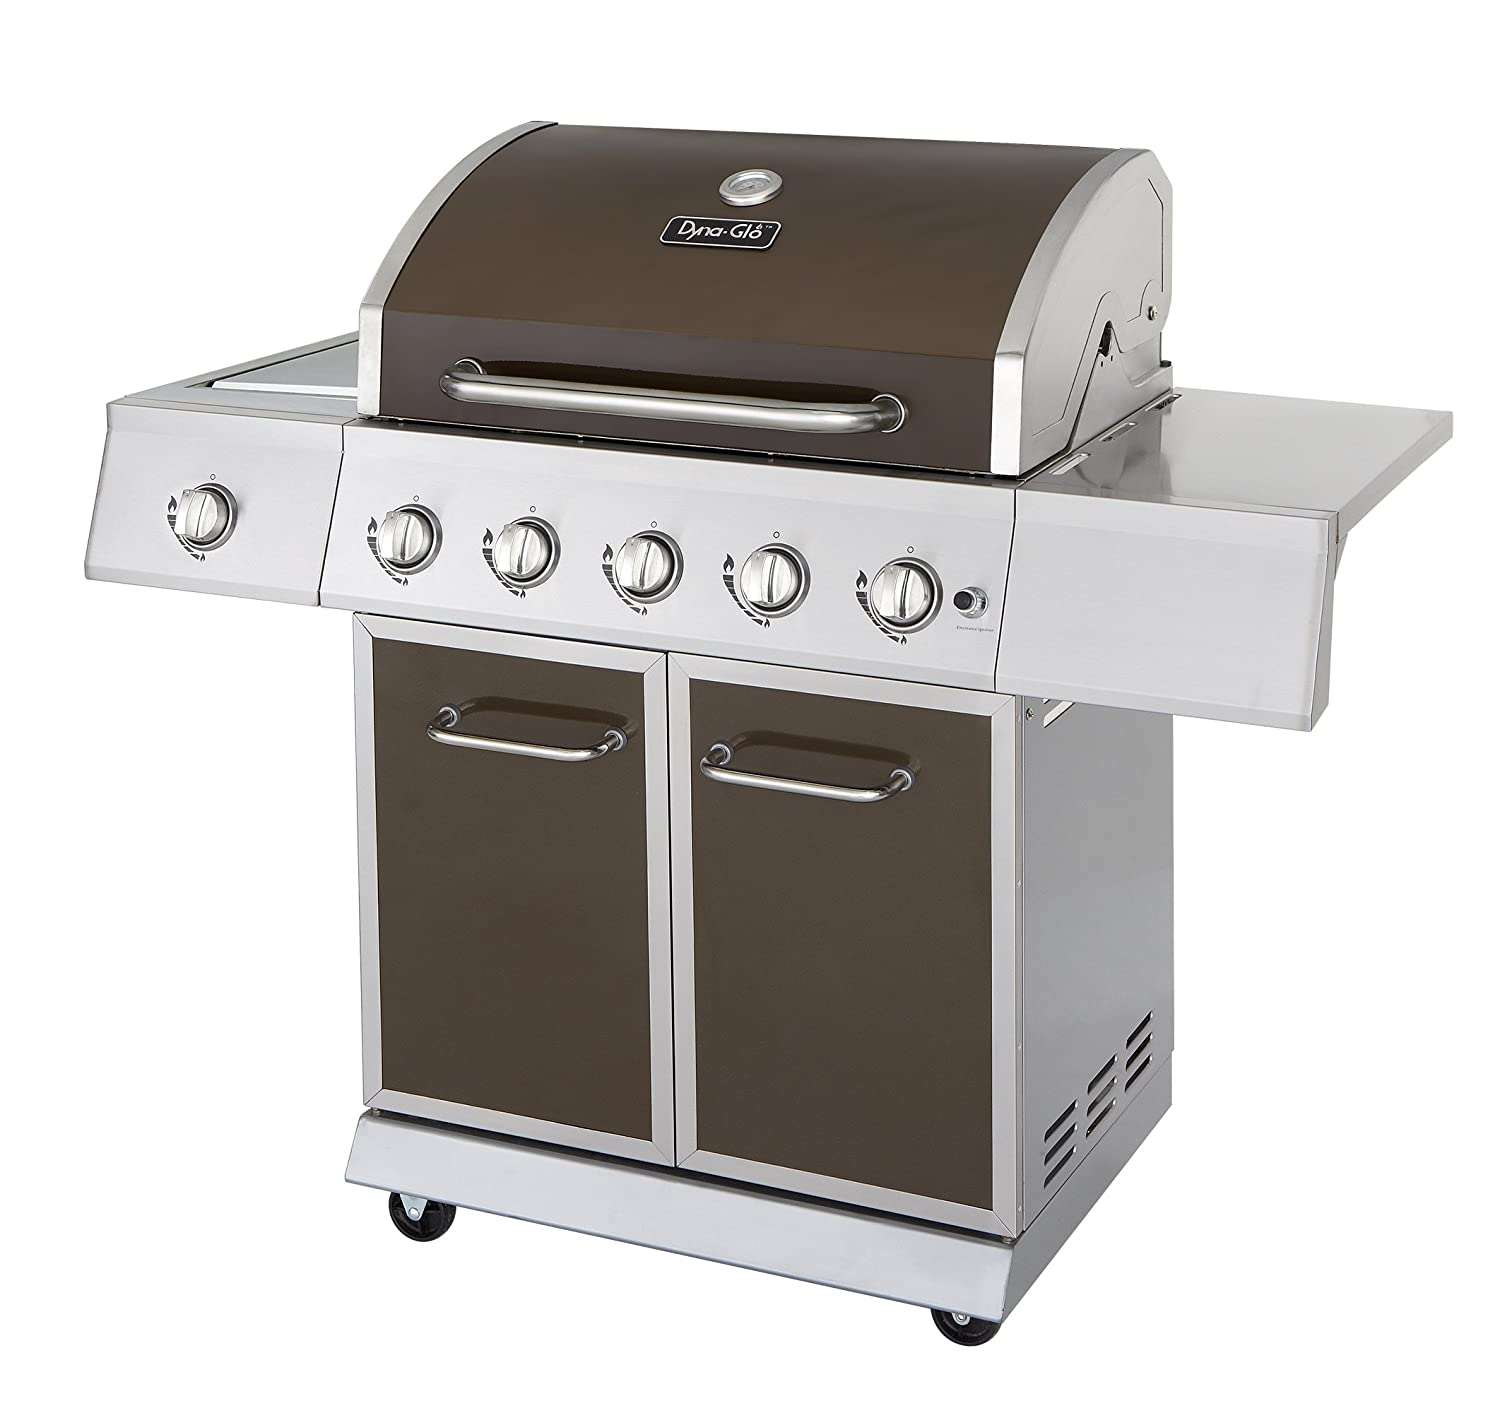 Amazon.com: Dyna-Glo DGE Series Propane Grill, 5 Burner, Bronze: Patio, Lawn & Garden